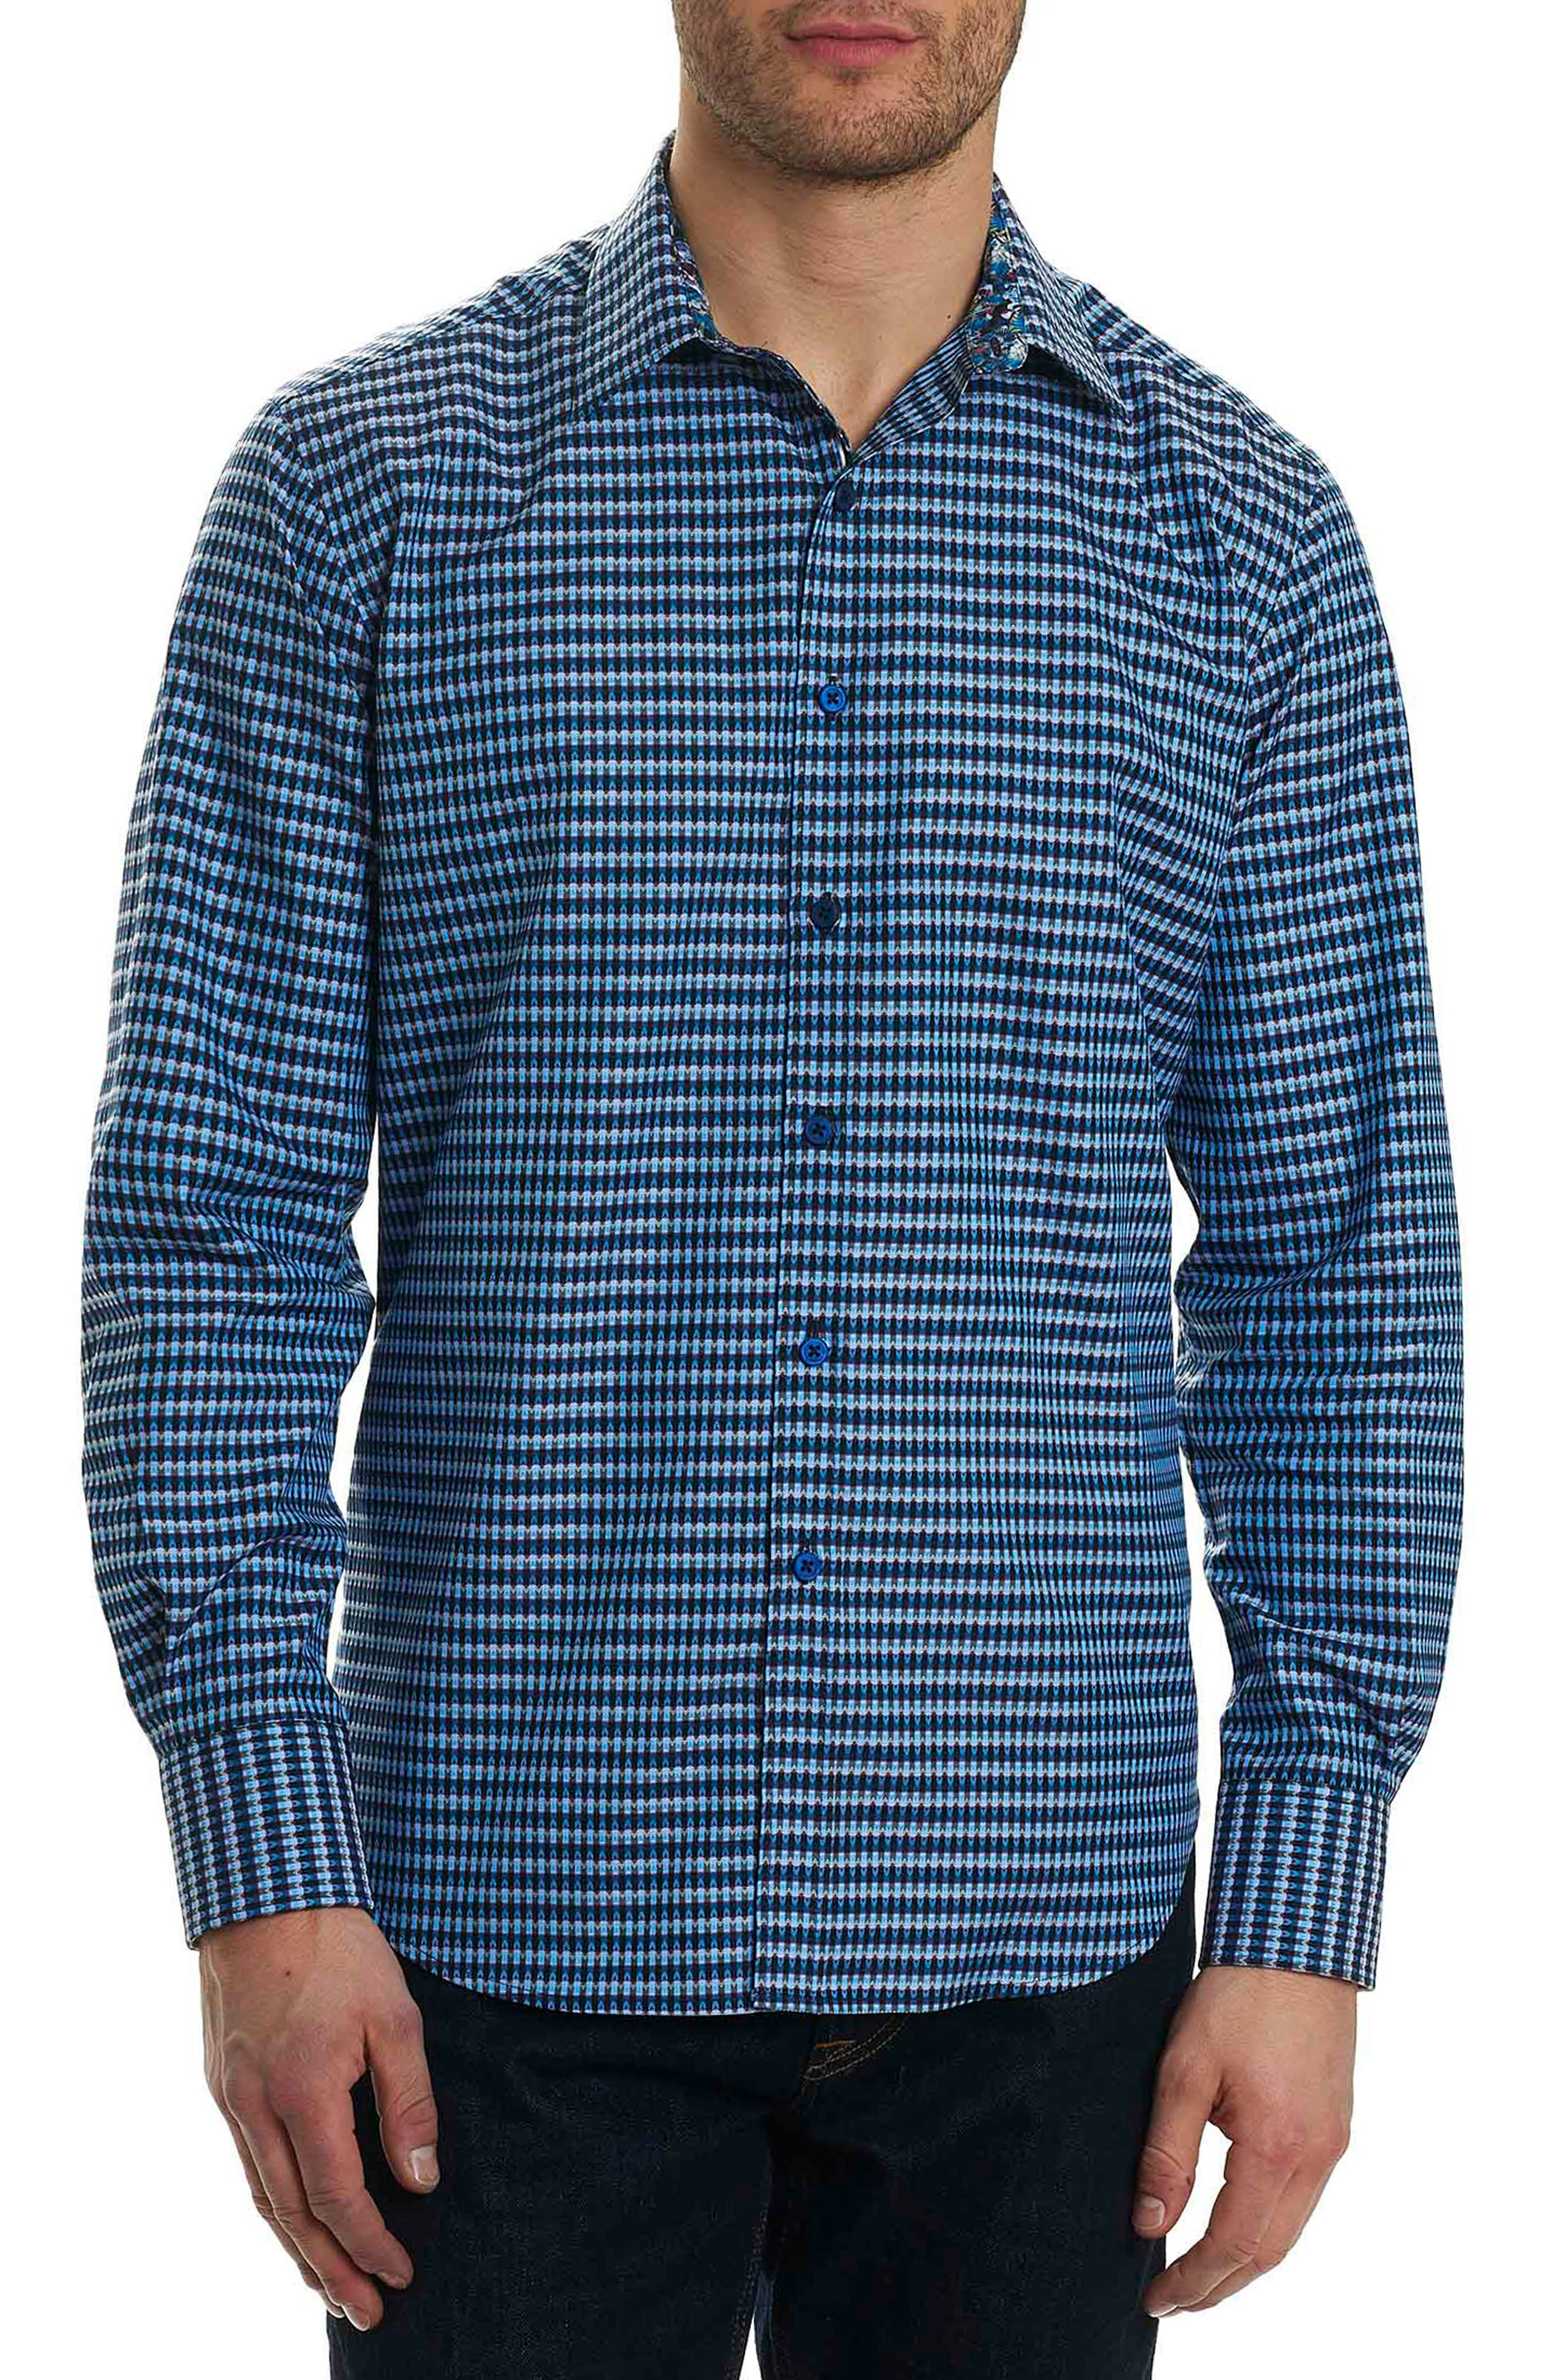 Hill Punch Classic Fit Print Sport Shirt,                         Main,                         color, Navy